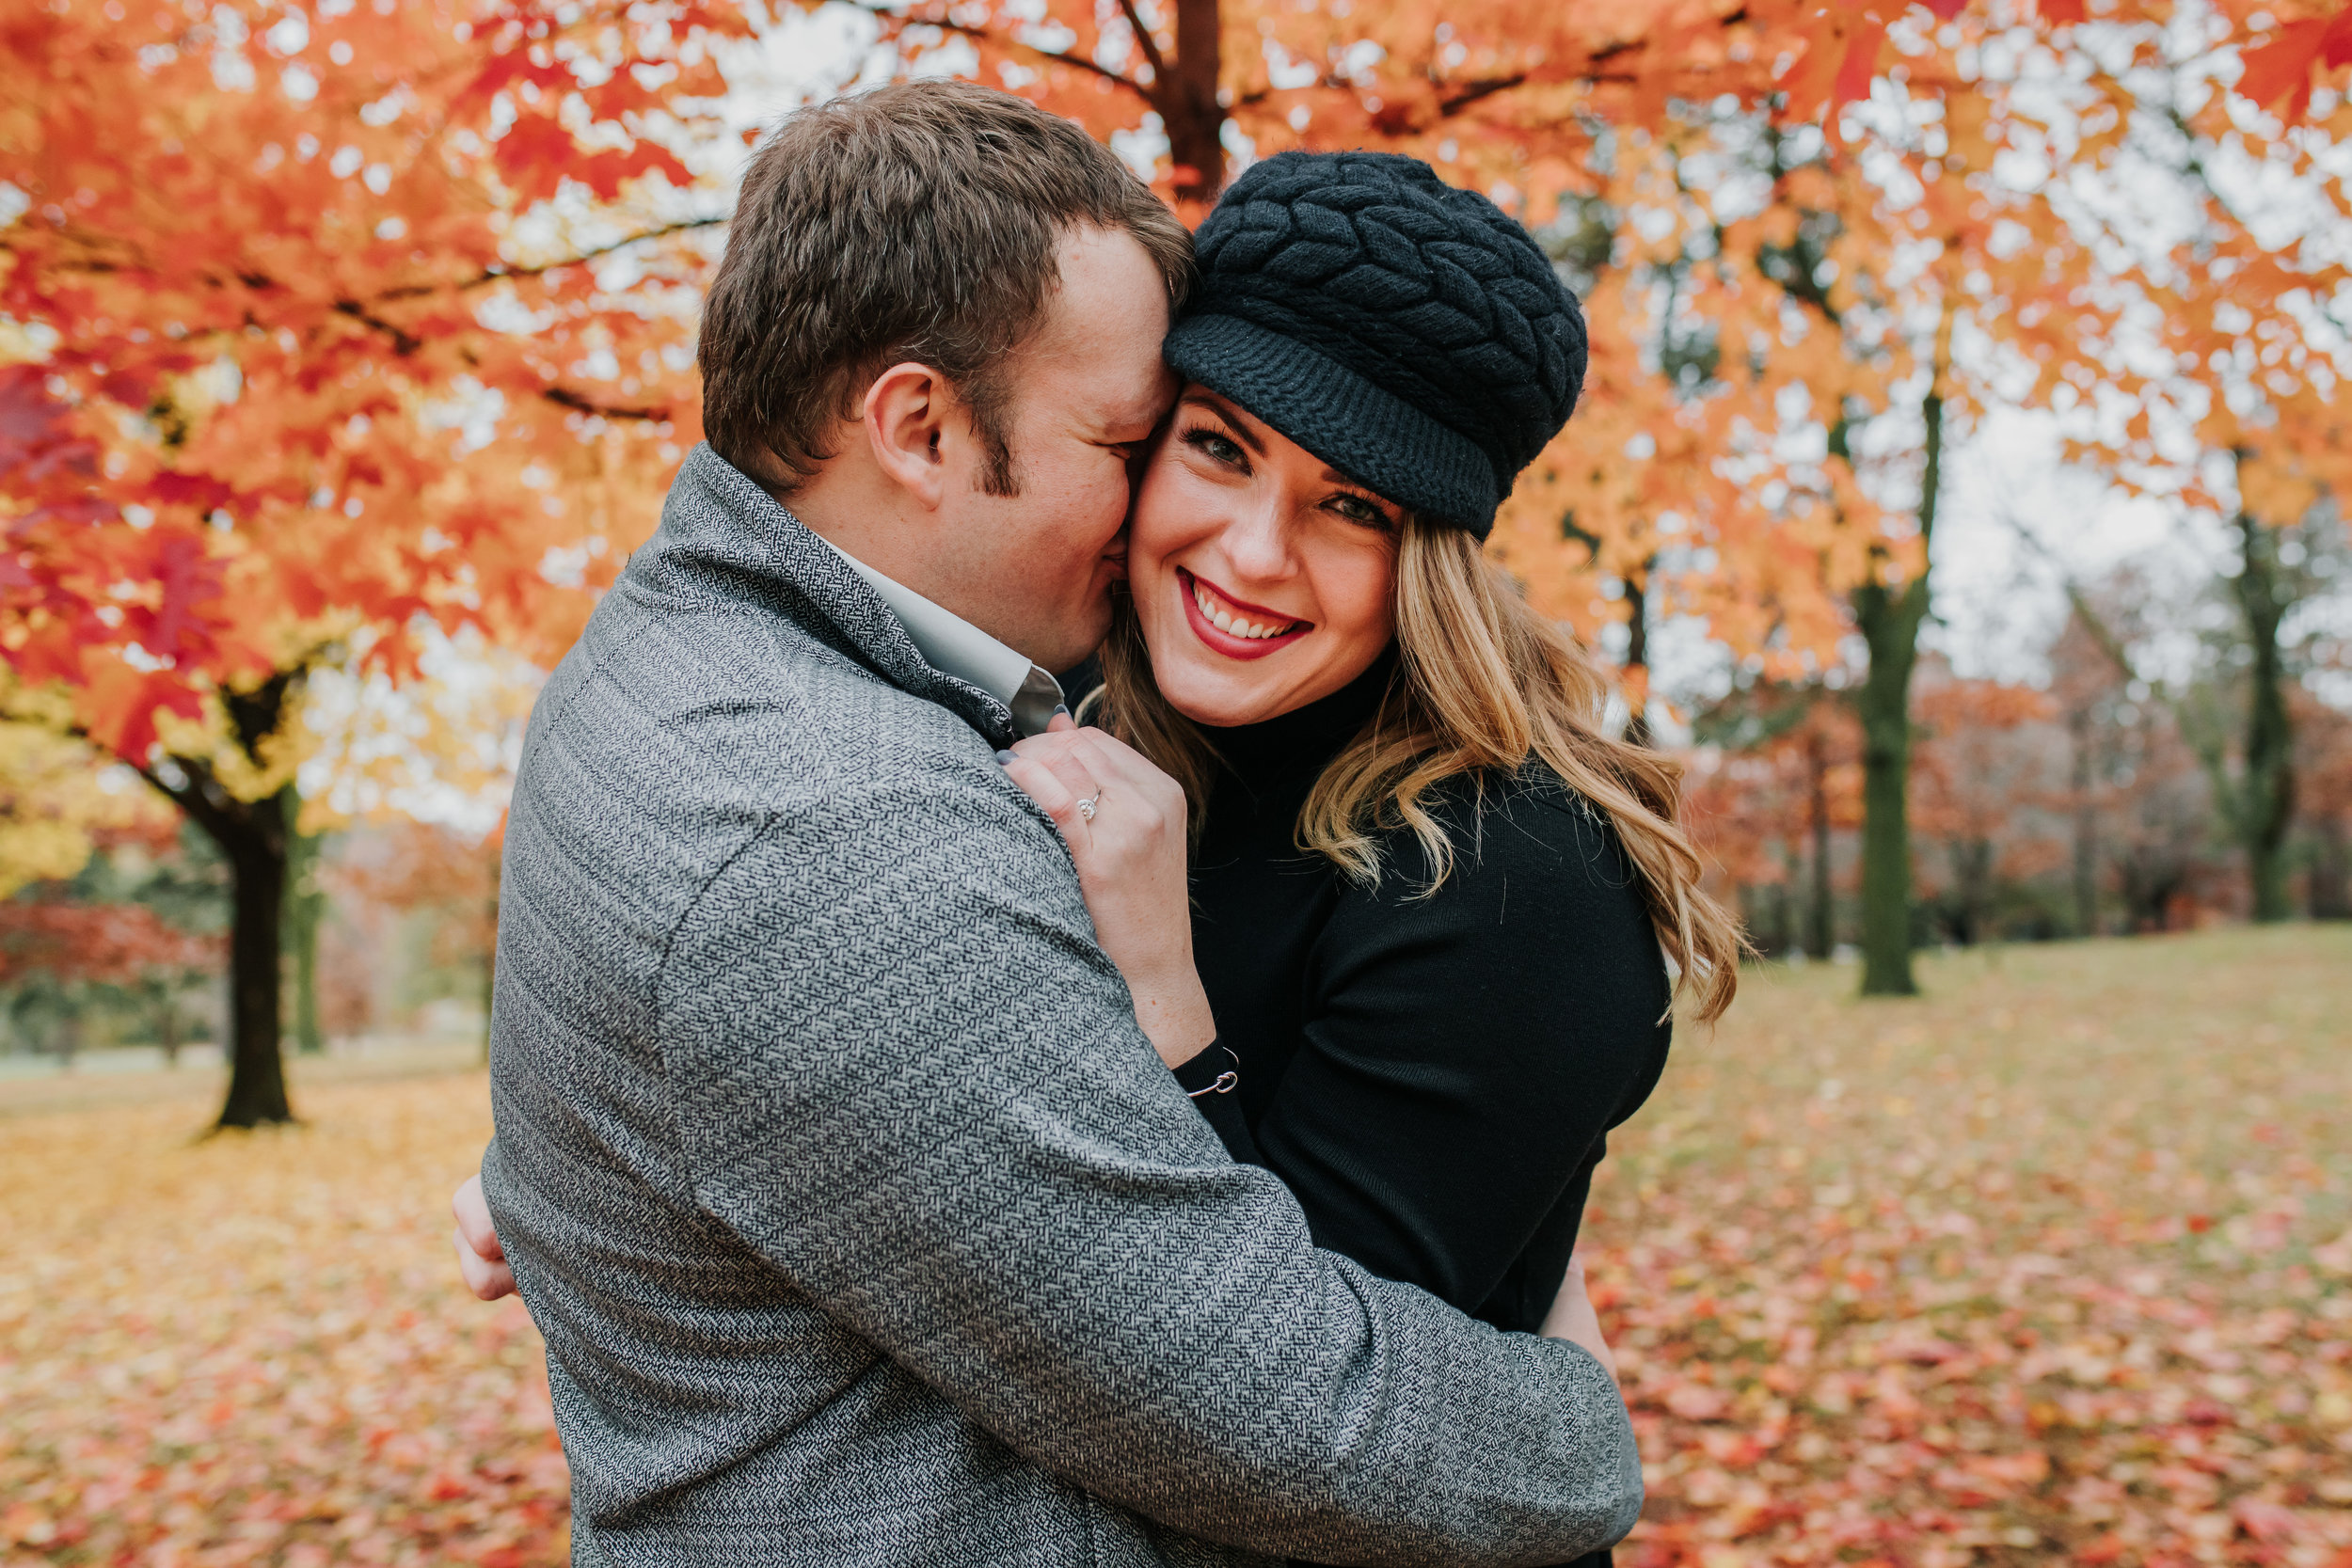 Meghan & Igor - Engaged - Nathaniel Jensen Photography - Omaha Nebraska Wedding Photograper-37.jpg